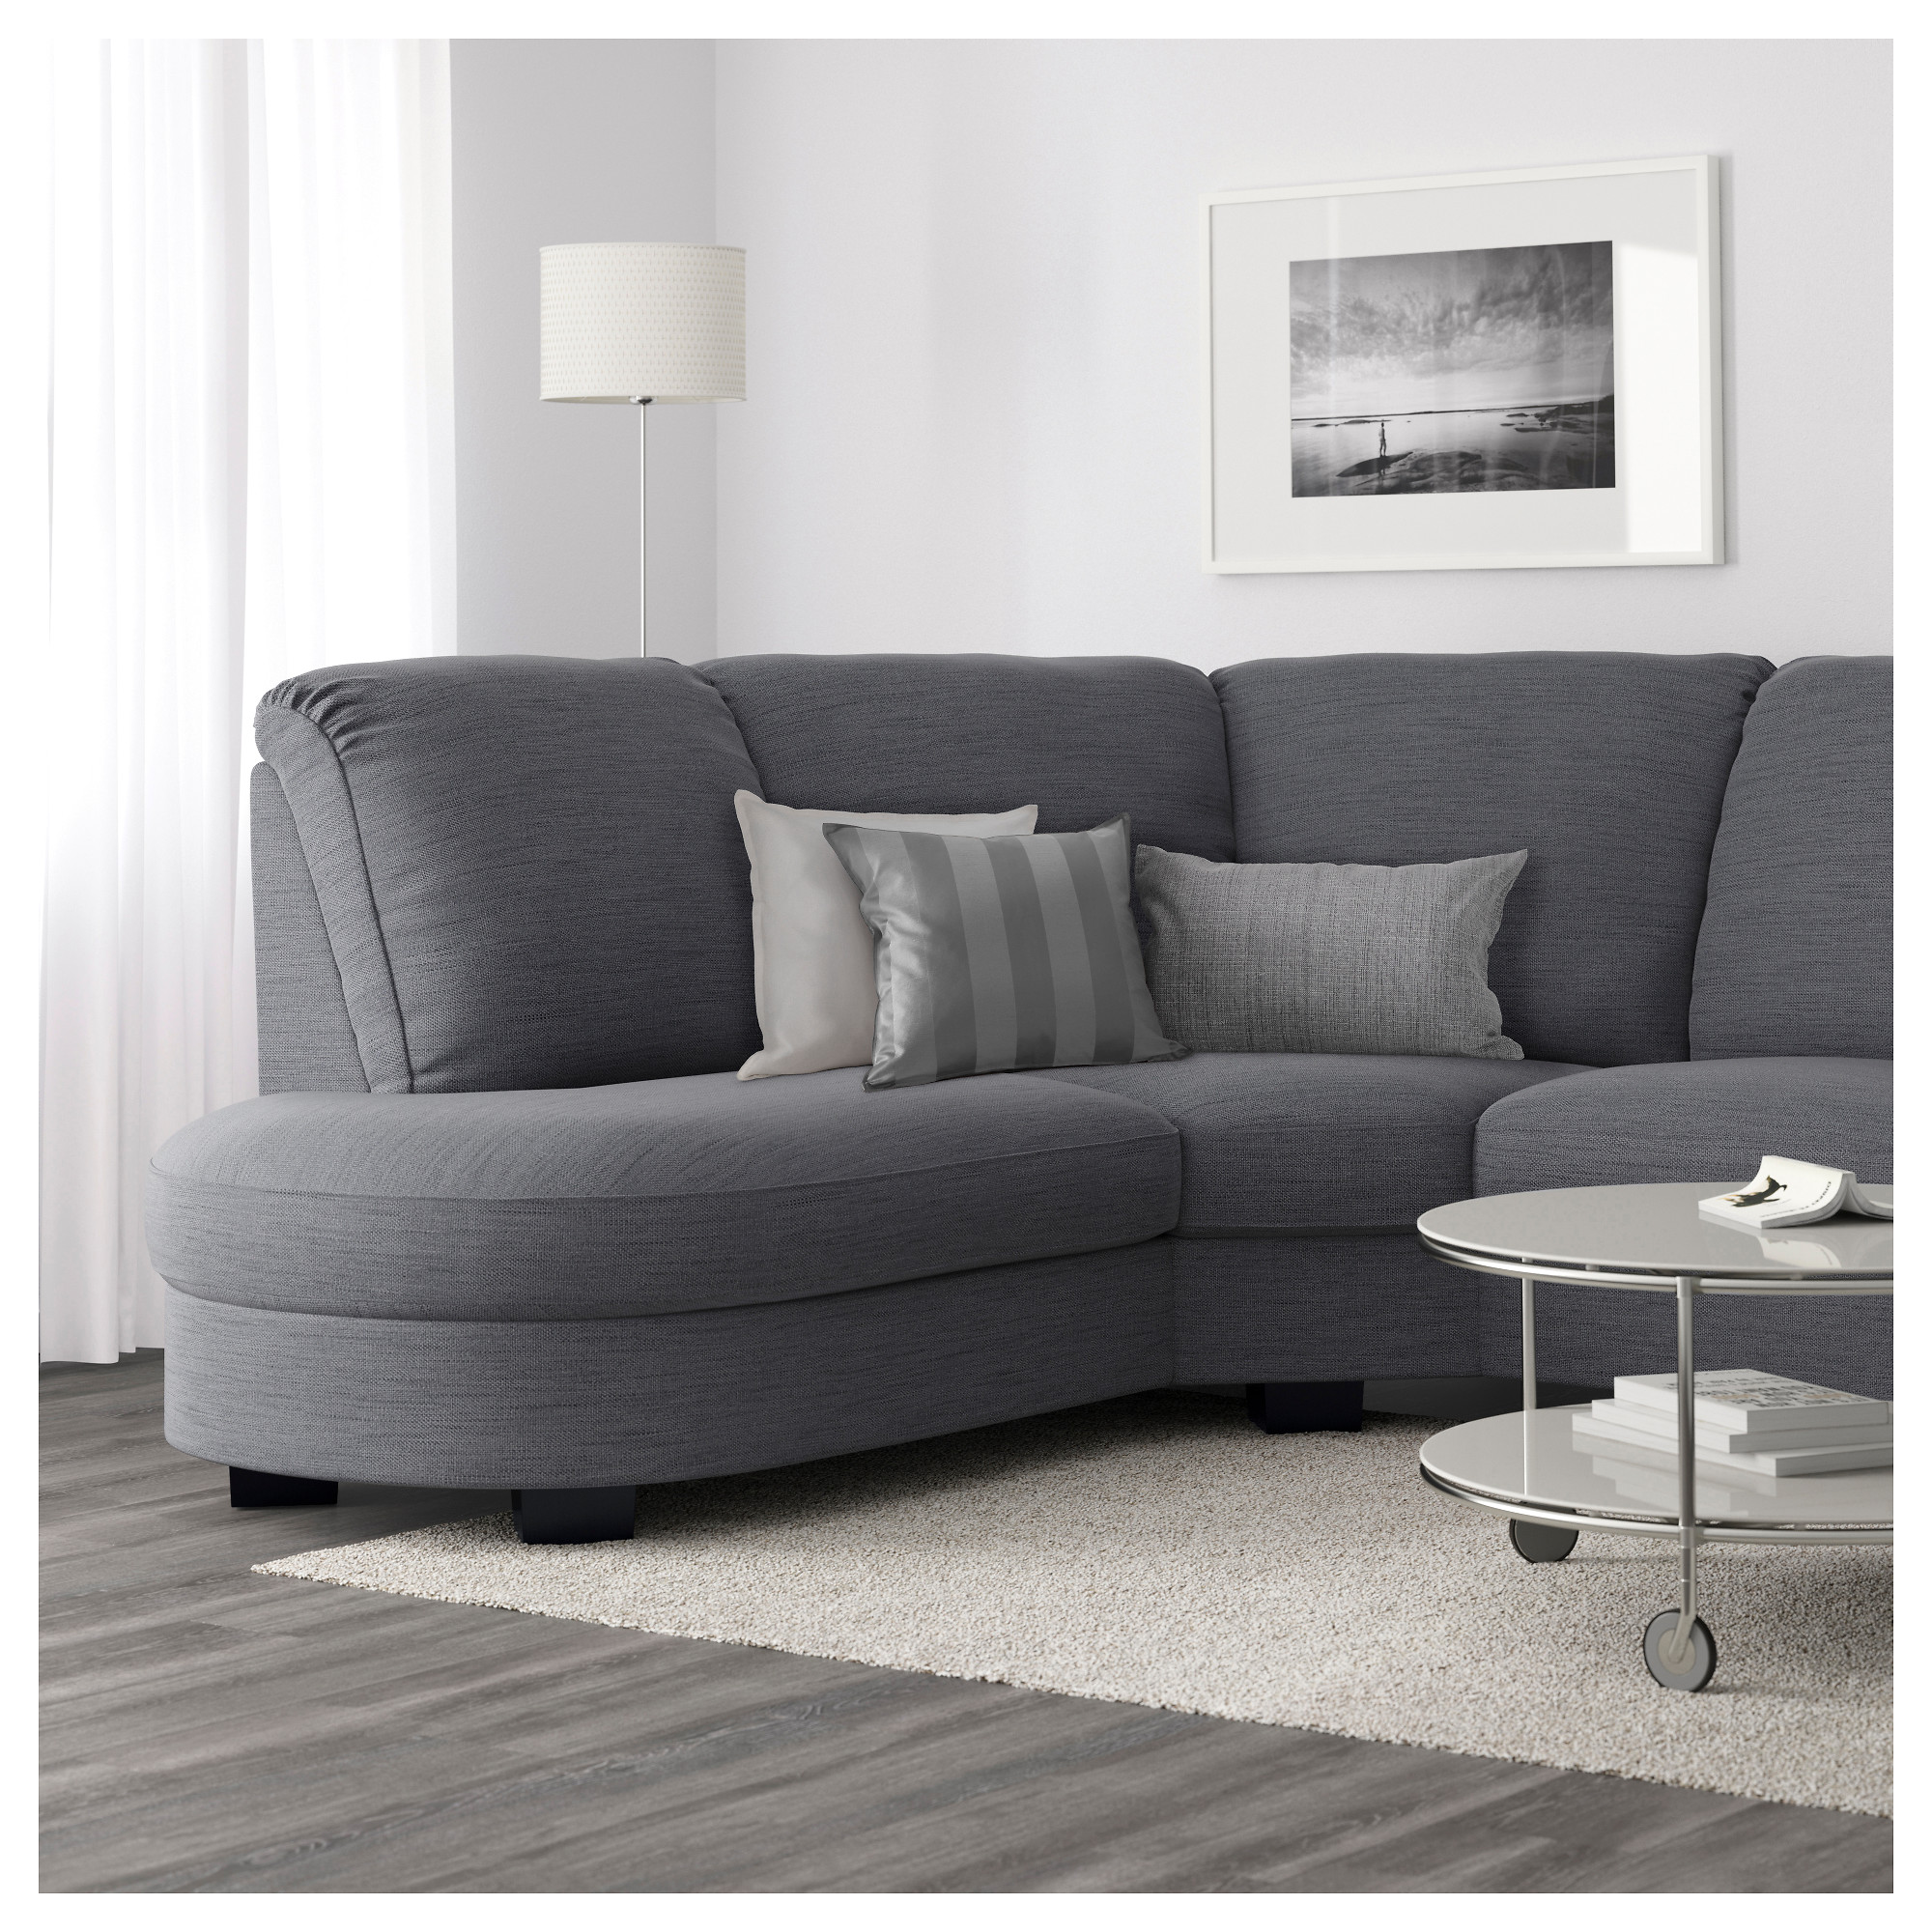 Delicieux TIDAFORS Corner Sofa With Arm Right   Hensta Gray   IKEA